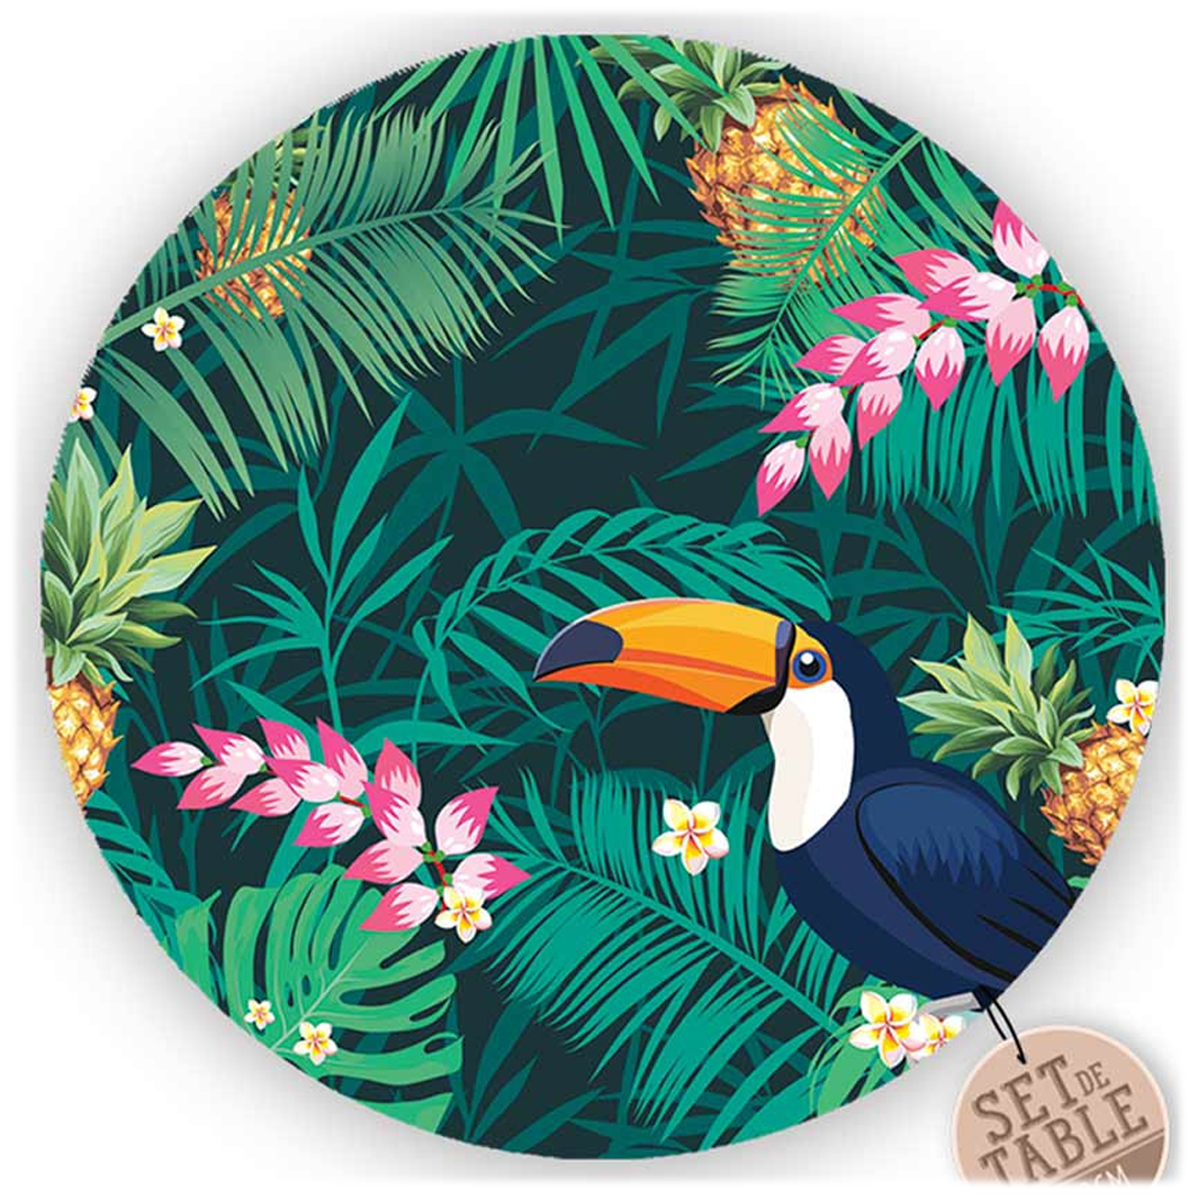 Set de table plastifié \'Tropical\' rose vert (toucan) - 38 cm - [R1617]